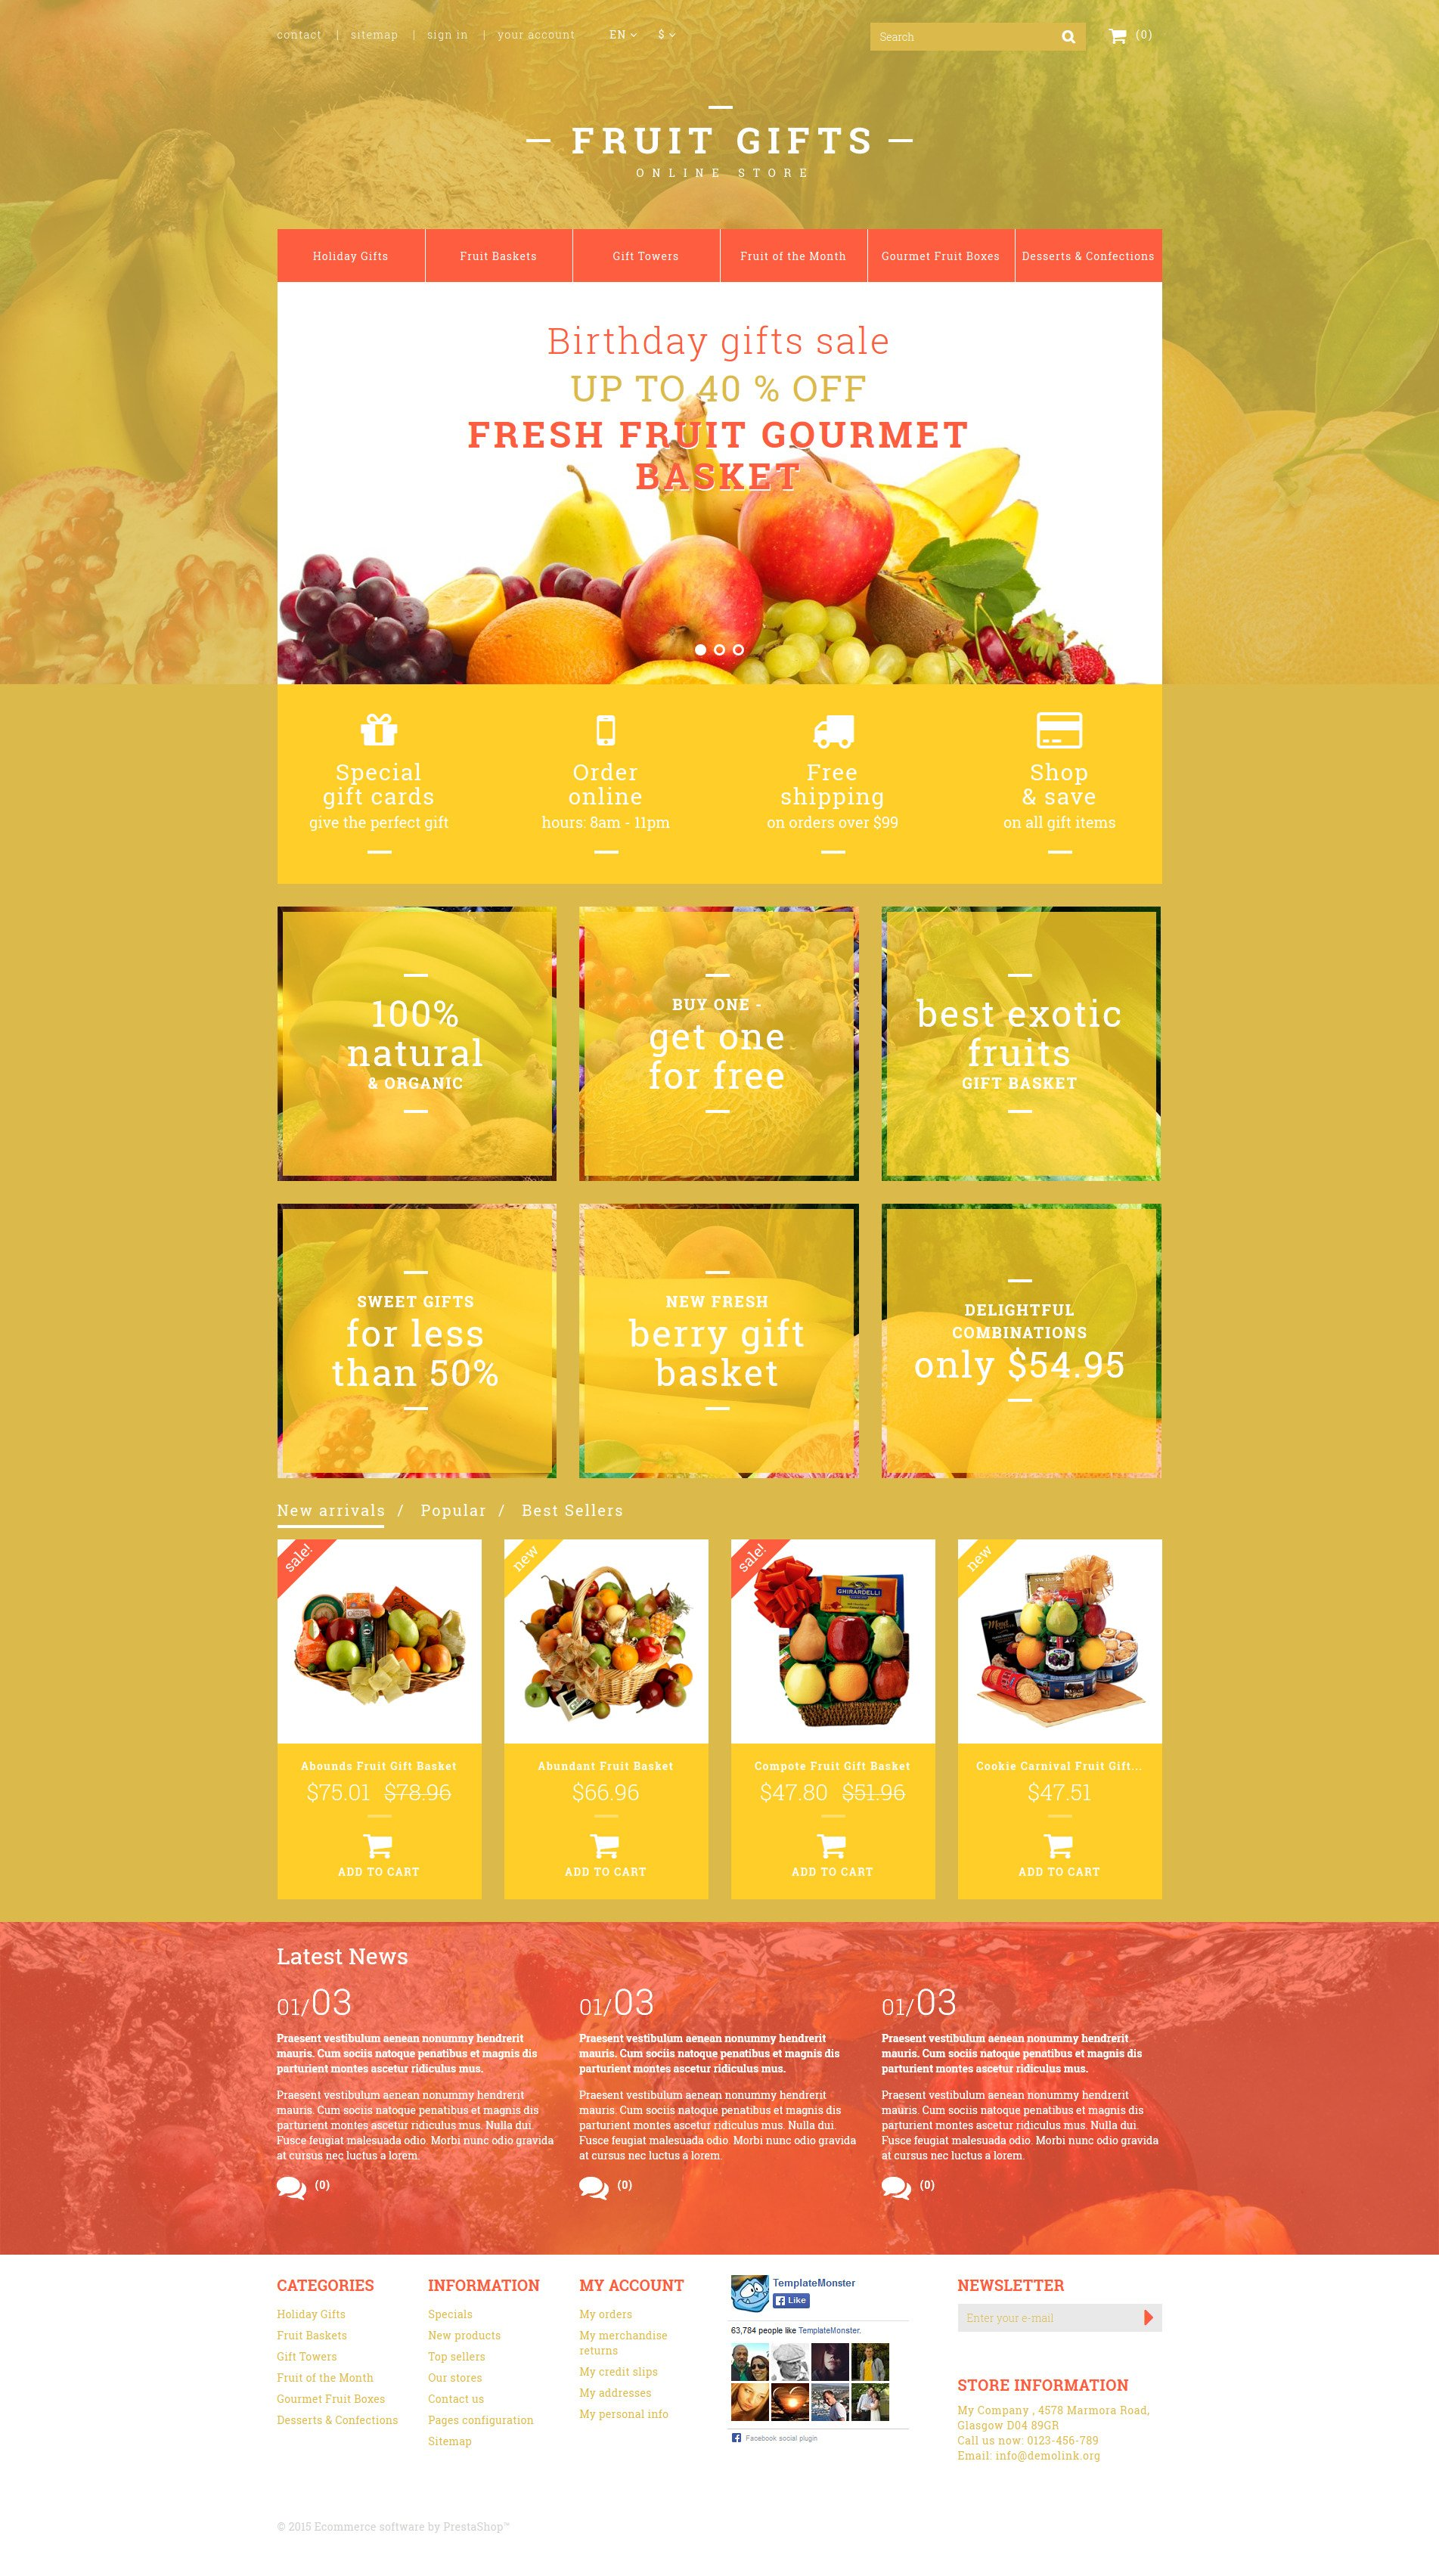 The Fruit Gift Store PrestaShop Design 53379, one of the best PrestaShop themes of its kind (gifts, most popular), also known as fruit gift store PrestaShop template, fruits PrestaShop template, dried PrestaShop template, basket PrestaShop template, gift PrestaShop template, chocolate PrestaShop template, strawberries PrestaShop template, gourmet PrestaShop template, chocolate-dipped PrestaShop template, citrus PrestaShop template, delicacy and related with fruit gift store, fruits, dried, basket, gift, chocolate, strawberries, gourmet, chocolate-dipped, citrus, delicacy, etc.